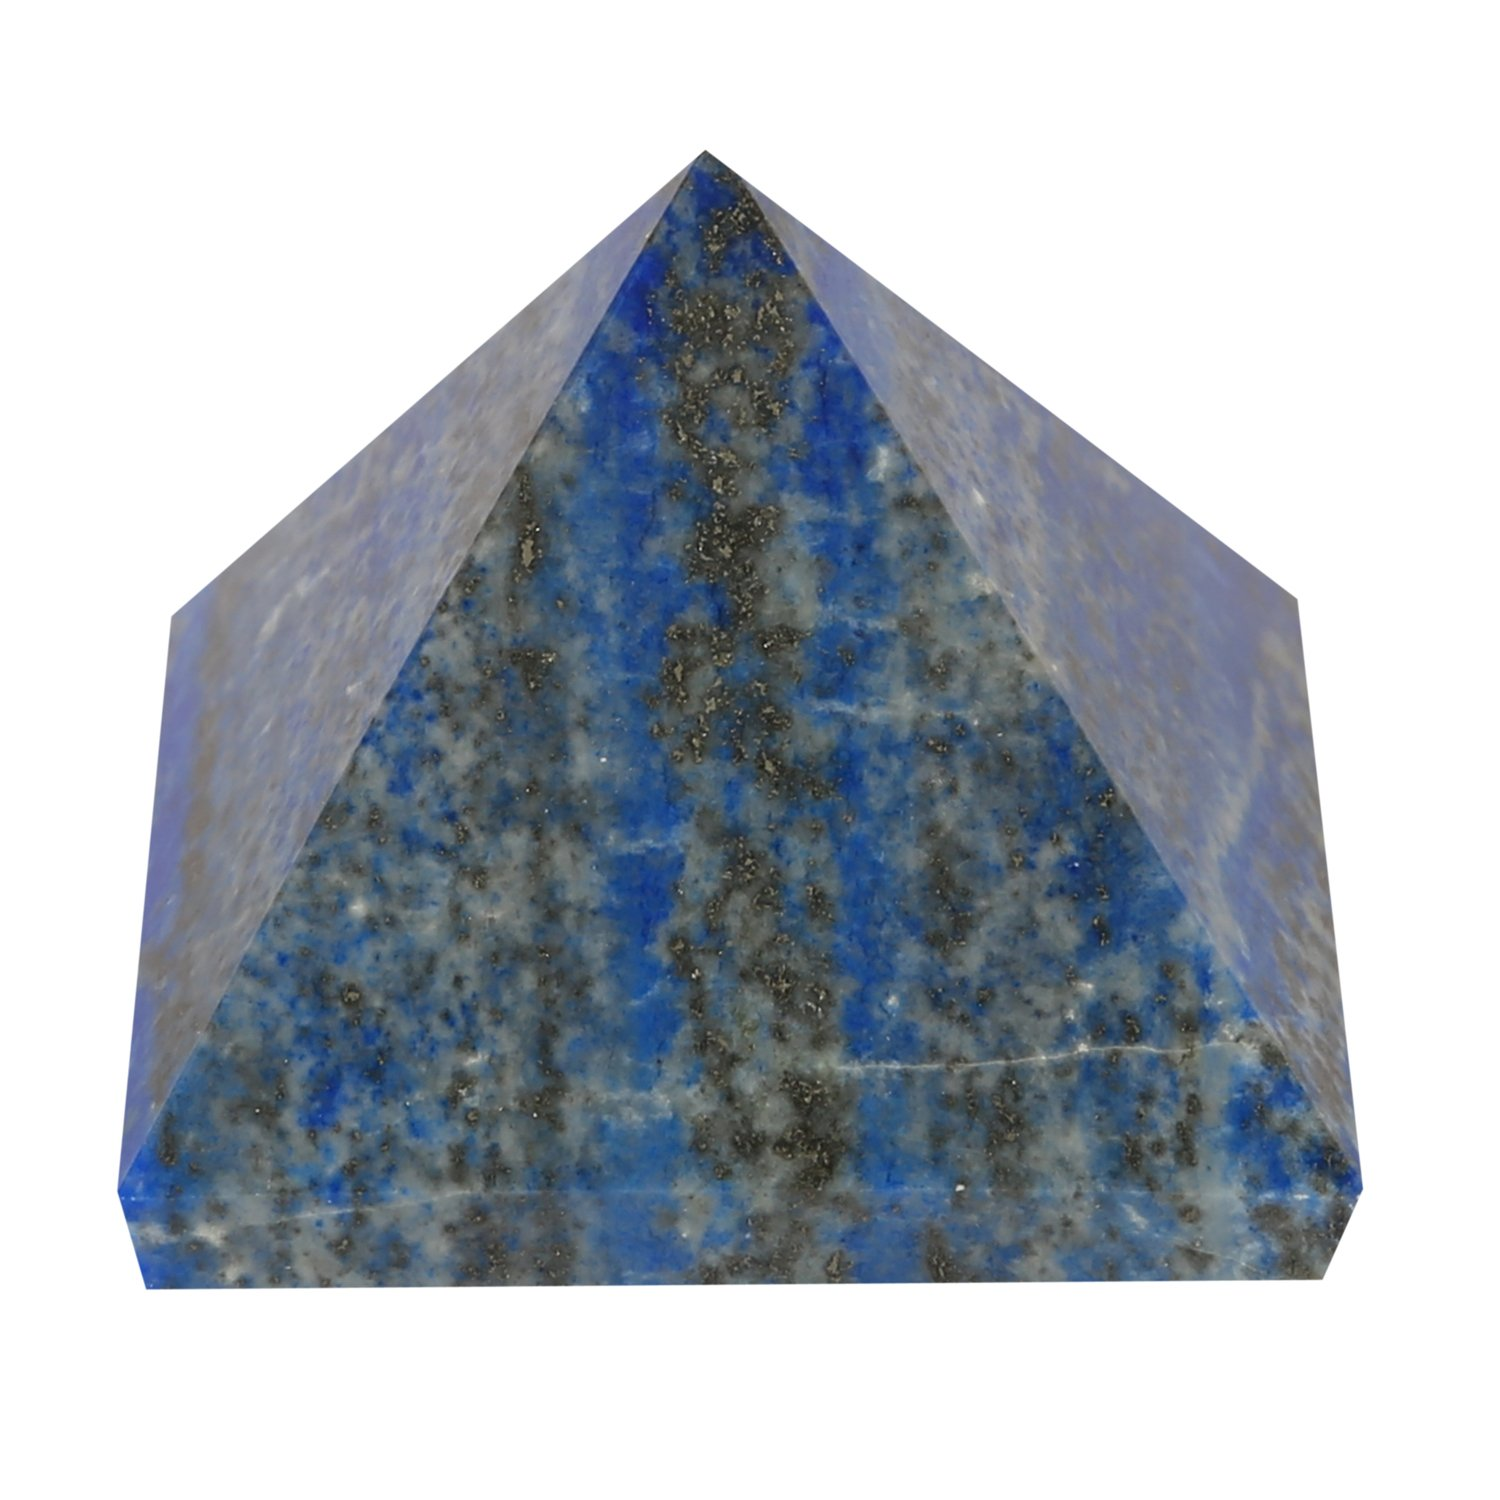 Aatmemstone Black Tourmaline Chakra Orgone Pyramid (Stone for Protection from all Negative Energies) Aatm Collection GAPC-32